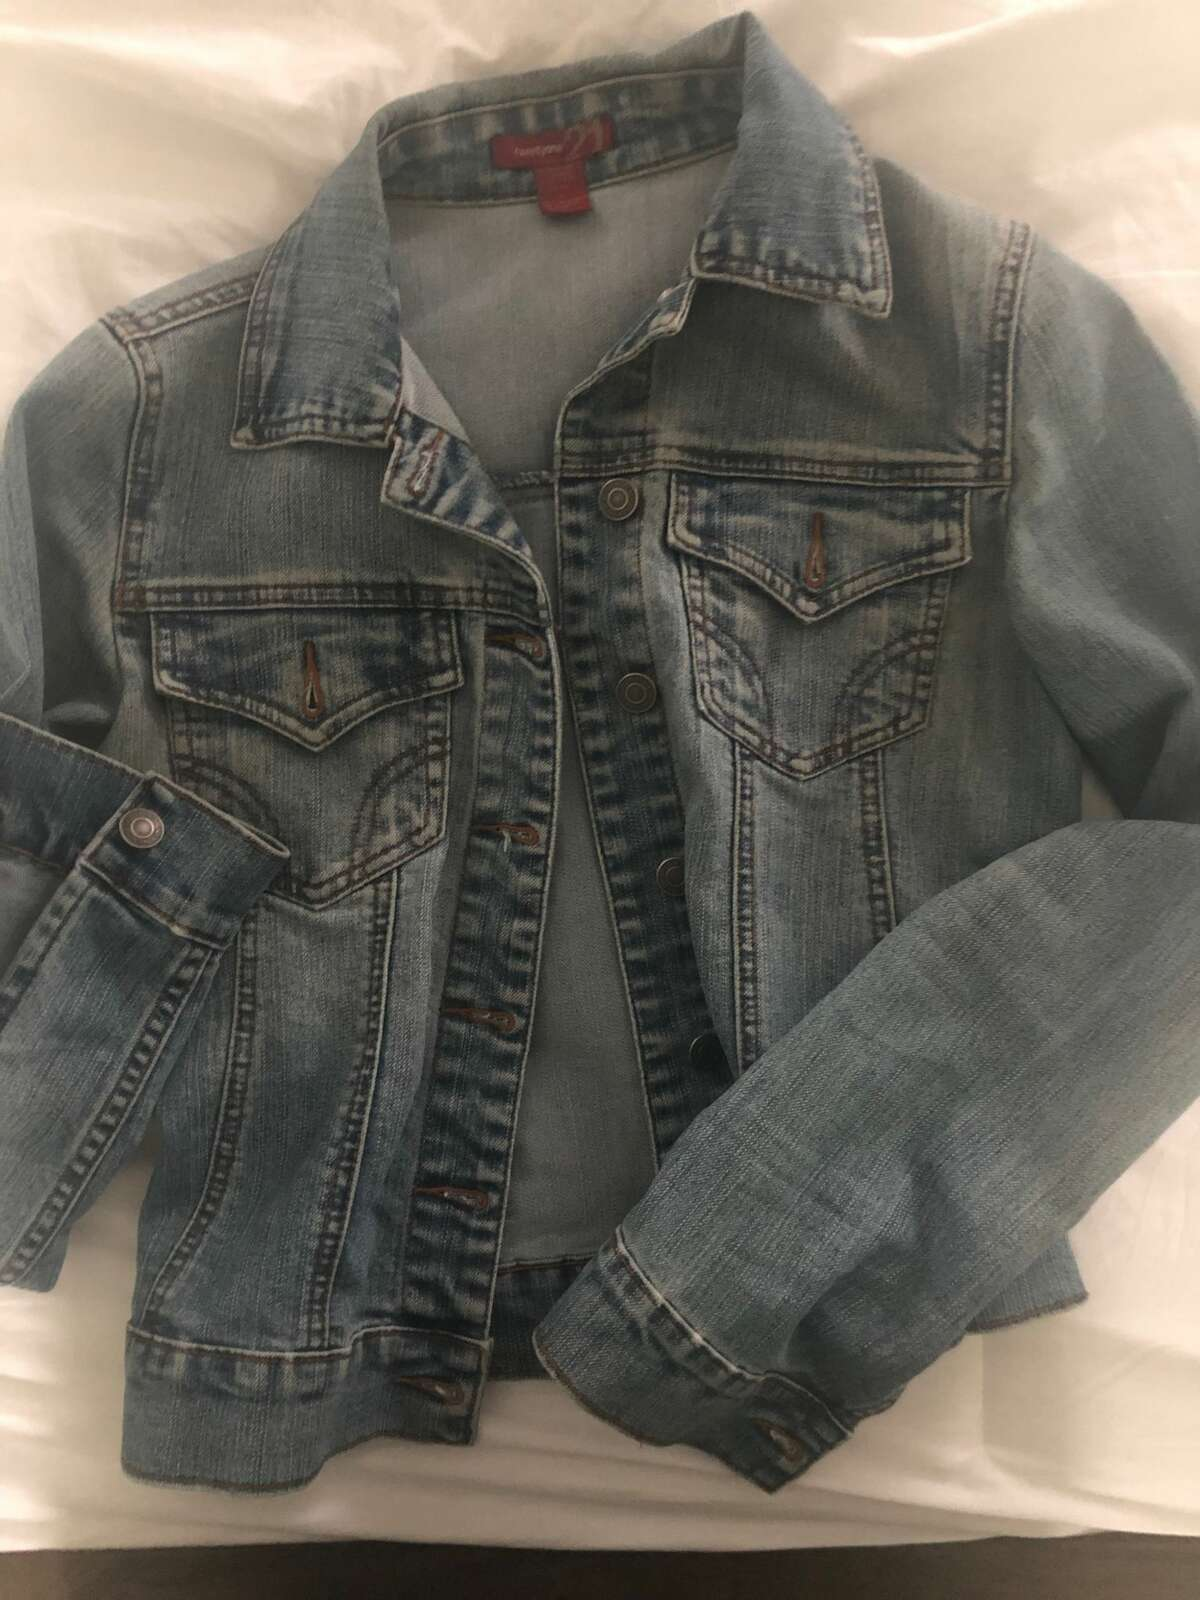 2. I still wear a denim jacket I bought 15 years ago - from Forever 21.